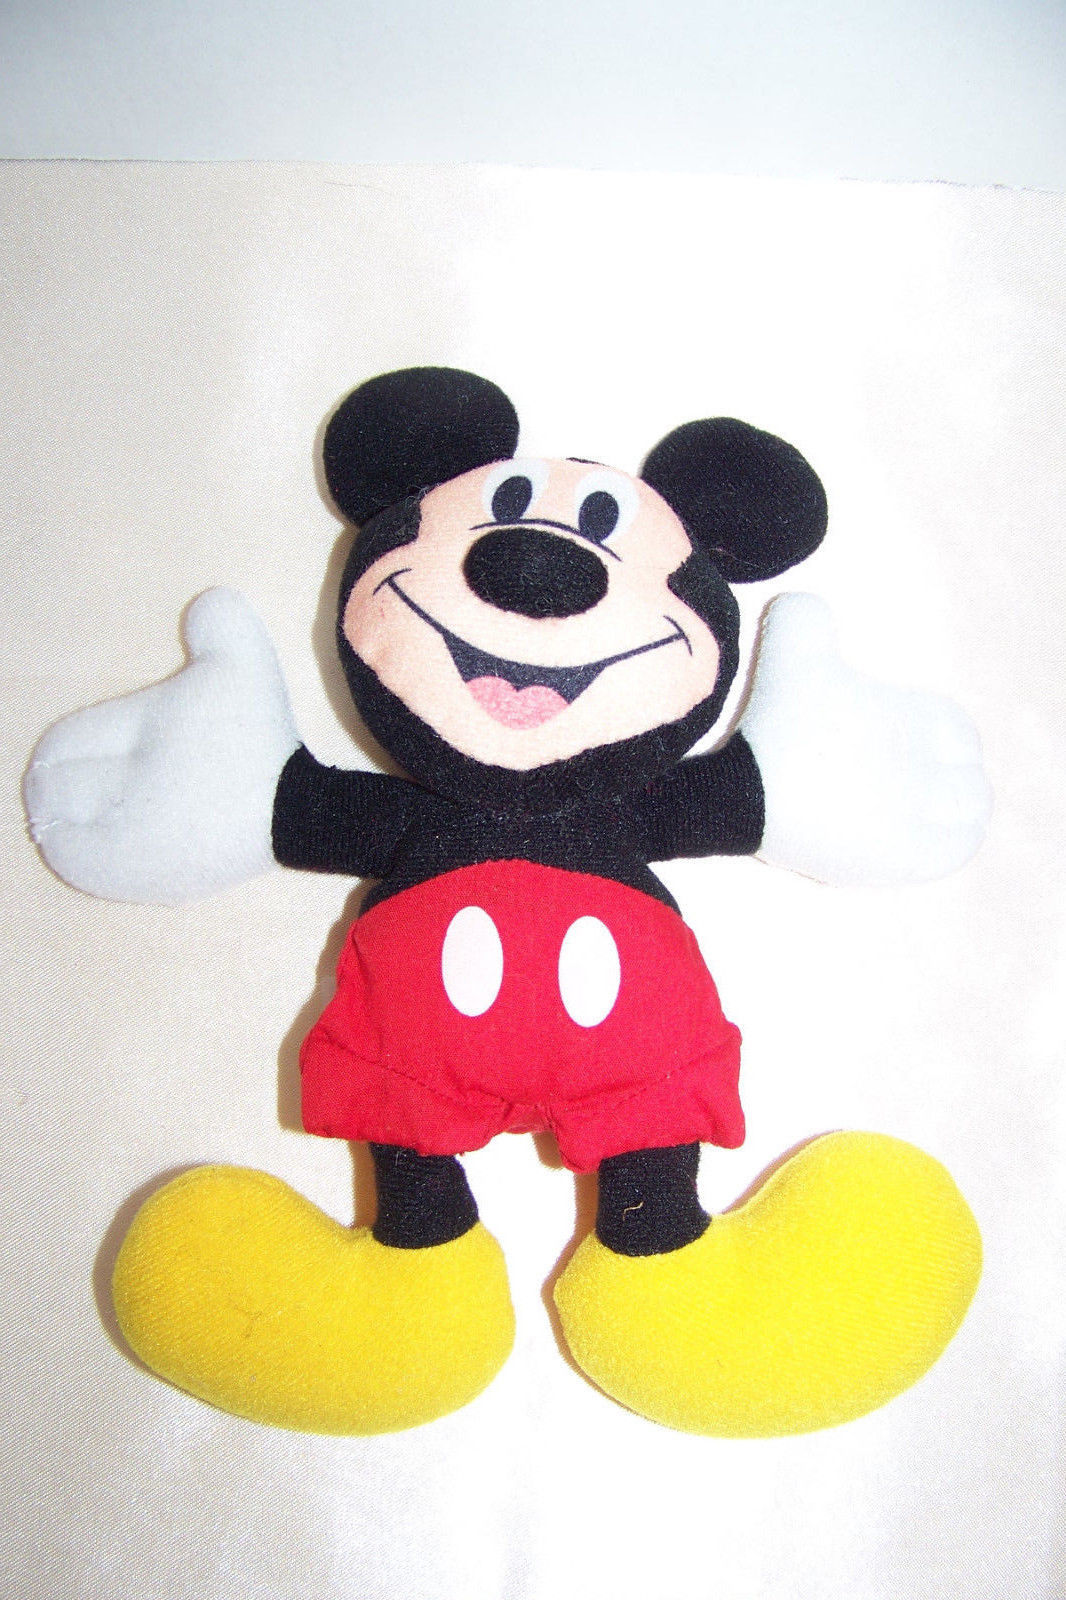 Disney Mickey Mouse plush beanie by Applause - $6.32